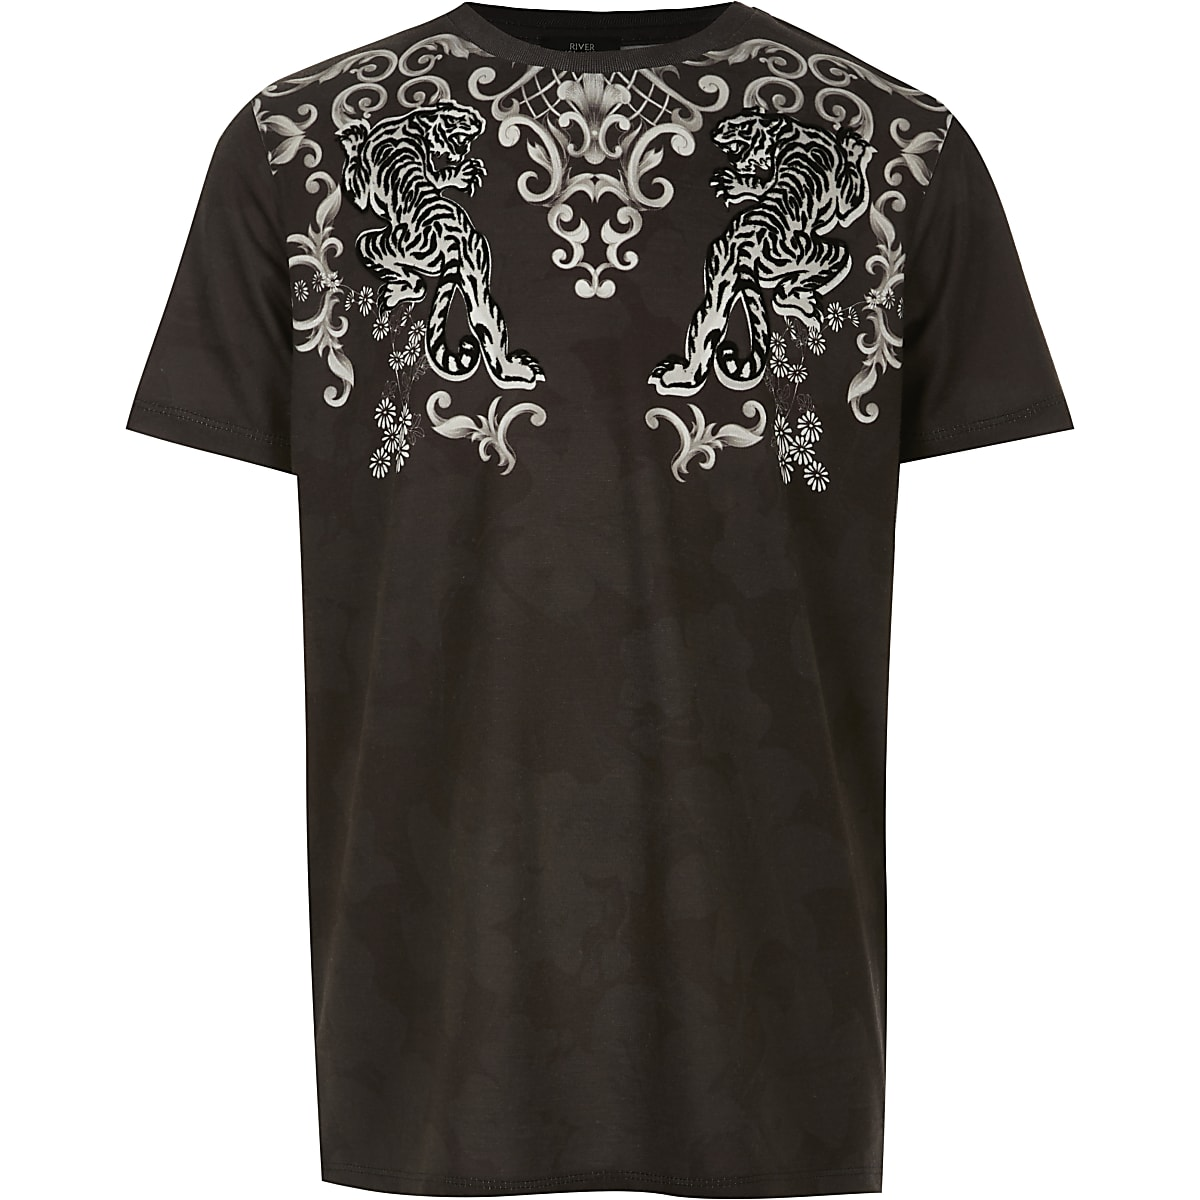 Boys black baroque flock T-shirt